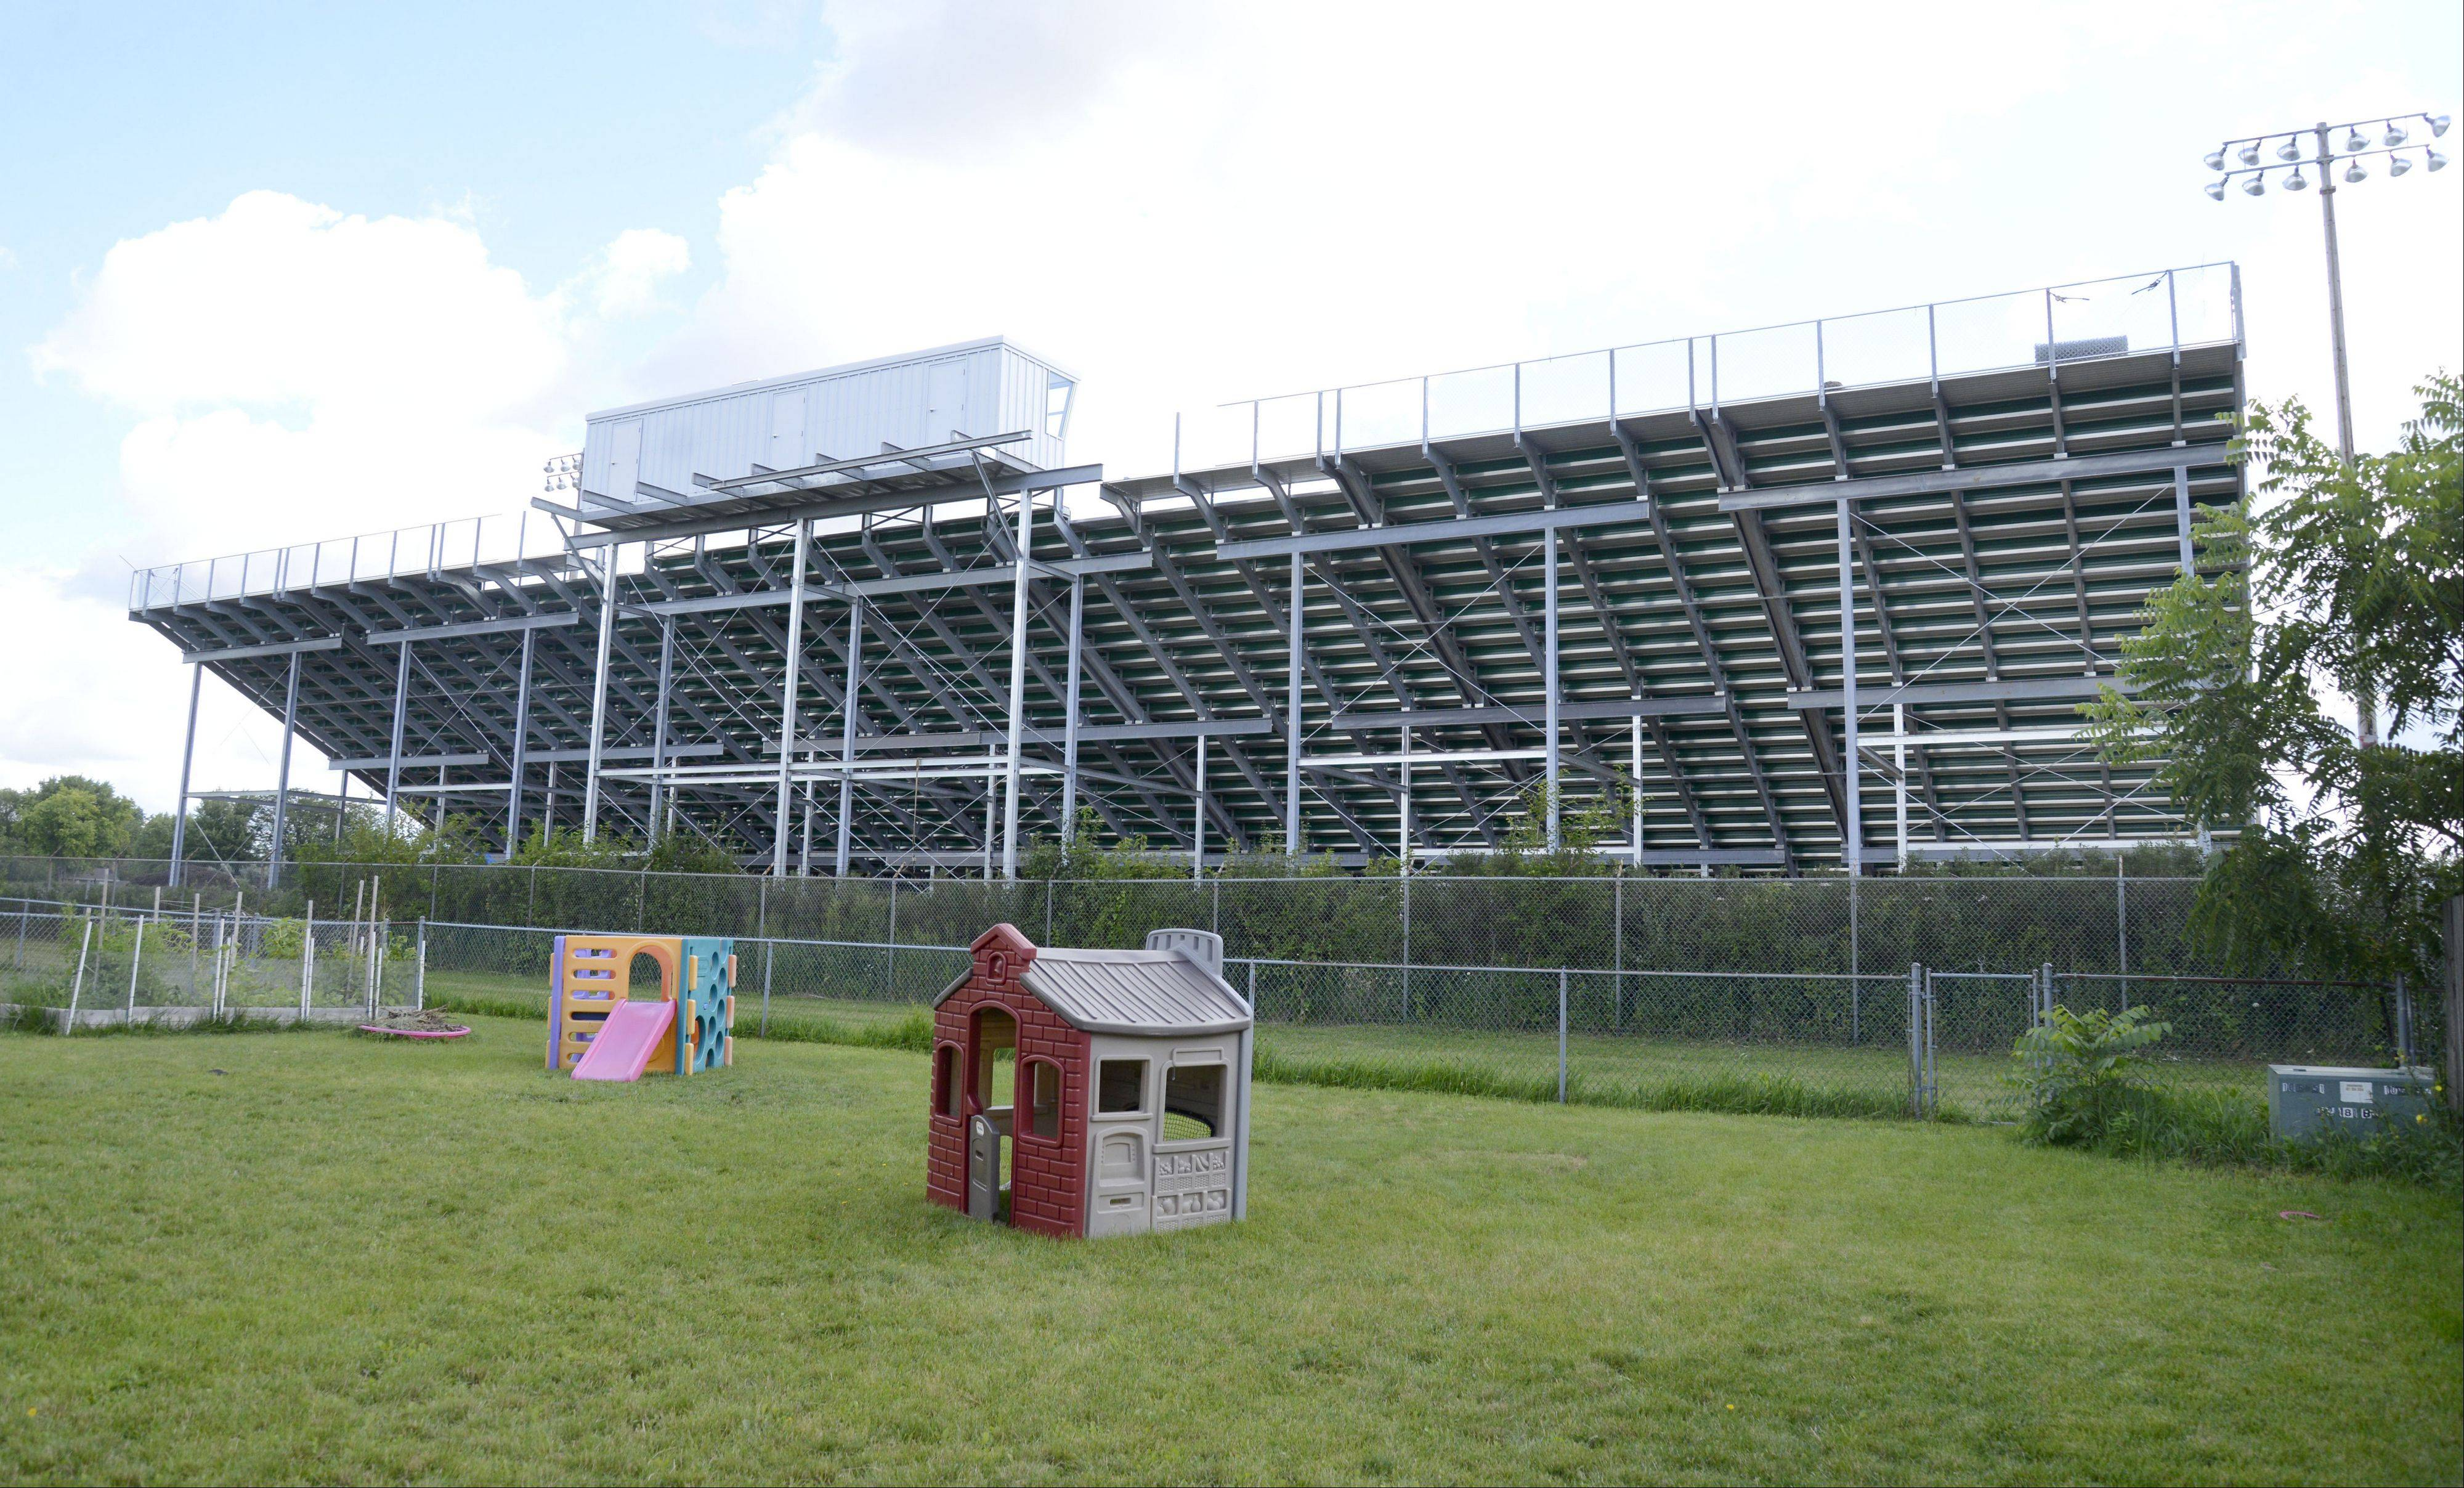 Judge: Crystal Lake South High School bleacher expansion broke law